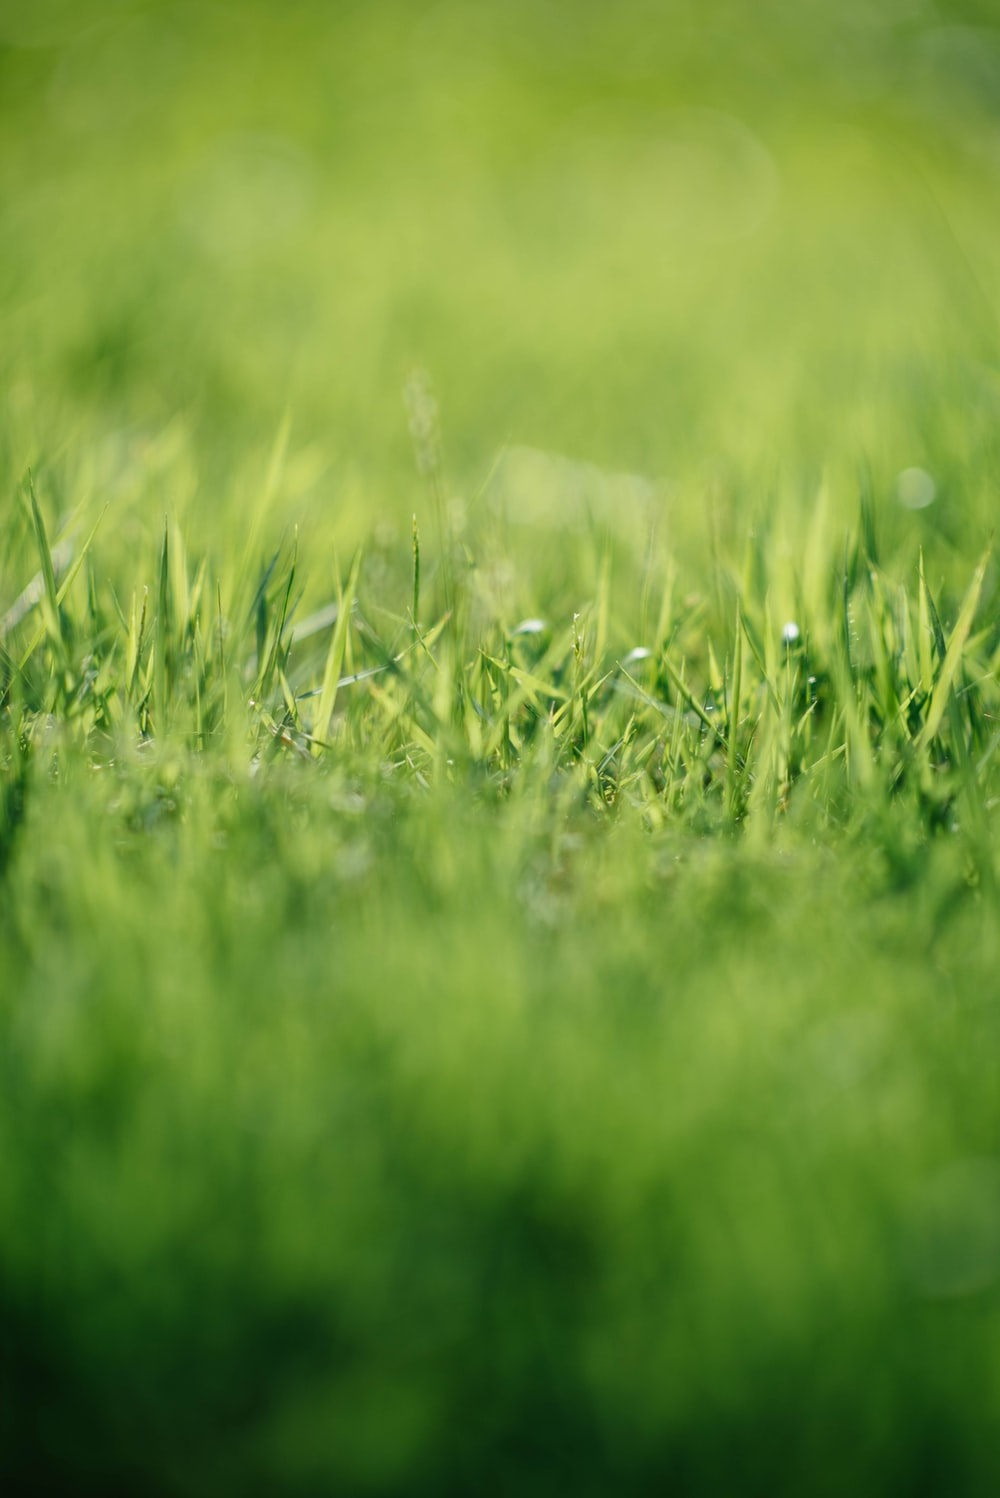 900+ Grass Background Images: Download ...